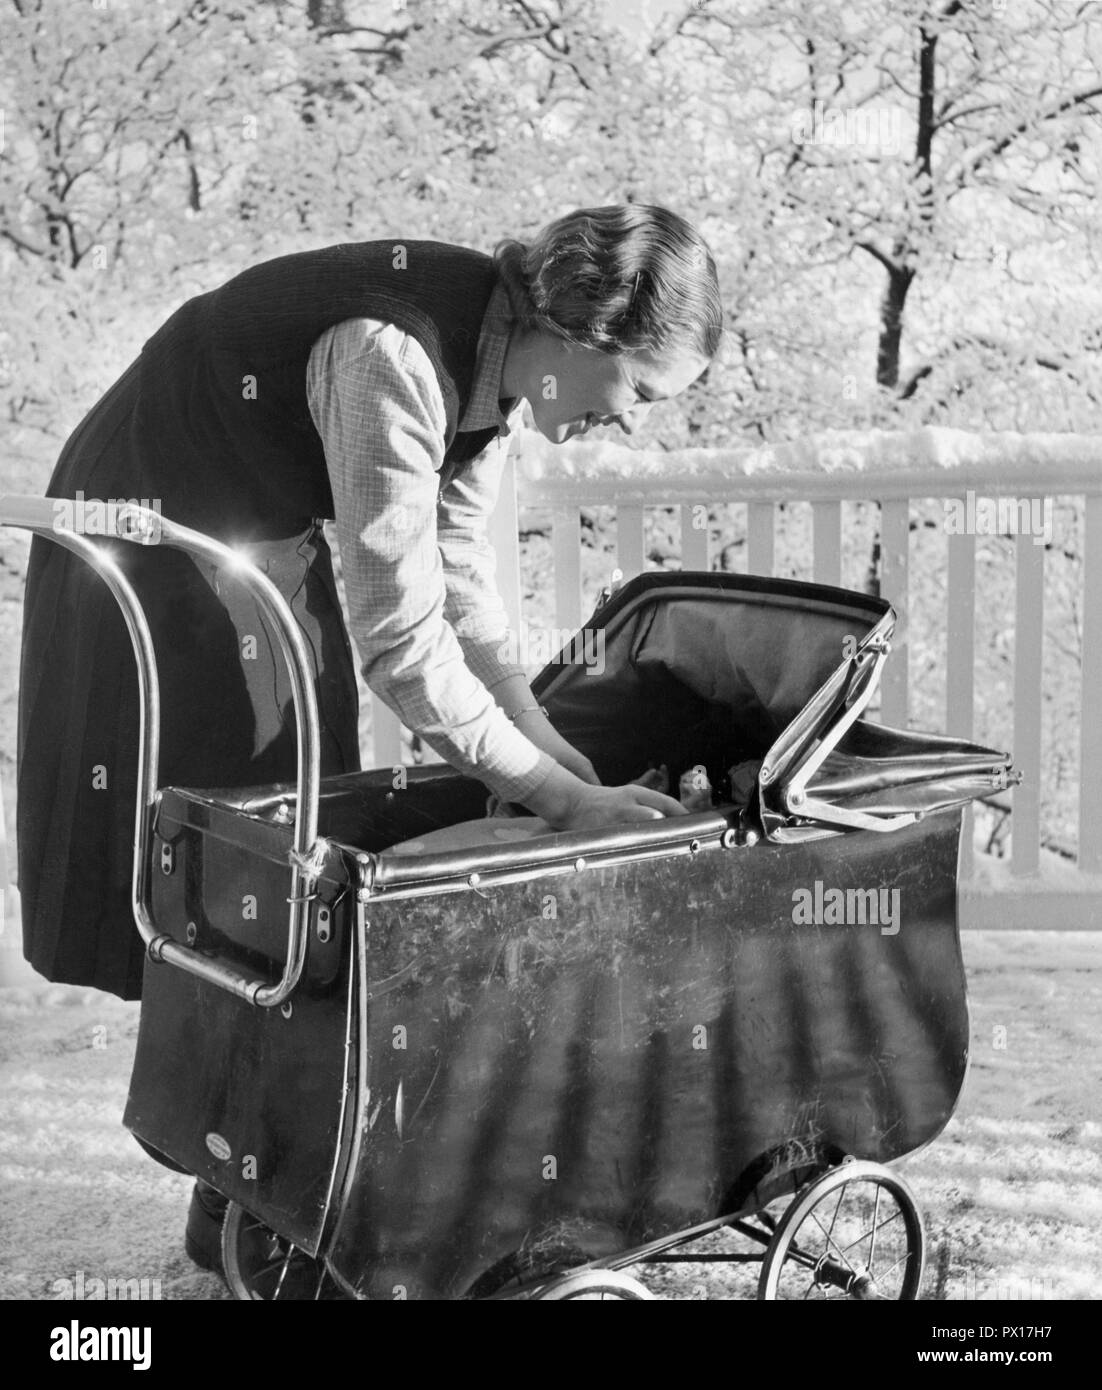 Mother with child in the 1940s. Mrs. Norrby with her daughter Margareta in a stroller on a winters day. Sweden 1942 - Stock Image